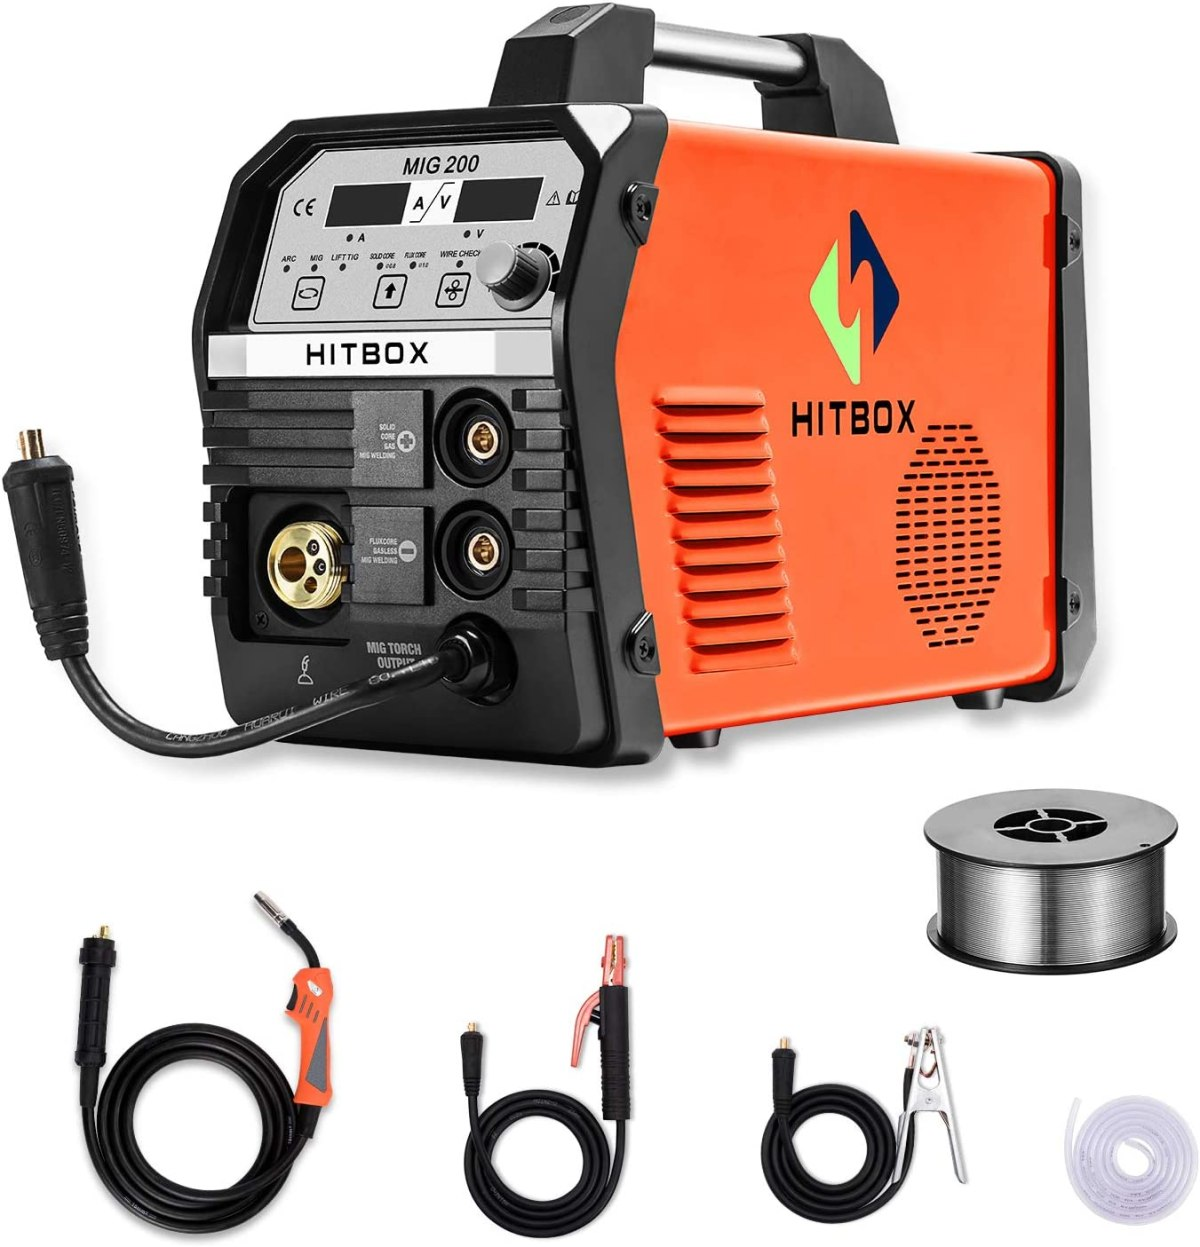 HITBOX MIG Welder 200Amp 4 in 1 Multifunction MIG Welding Machine 220V